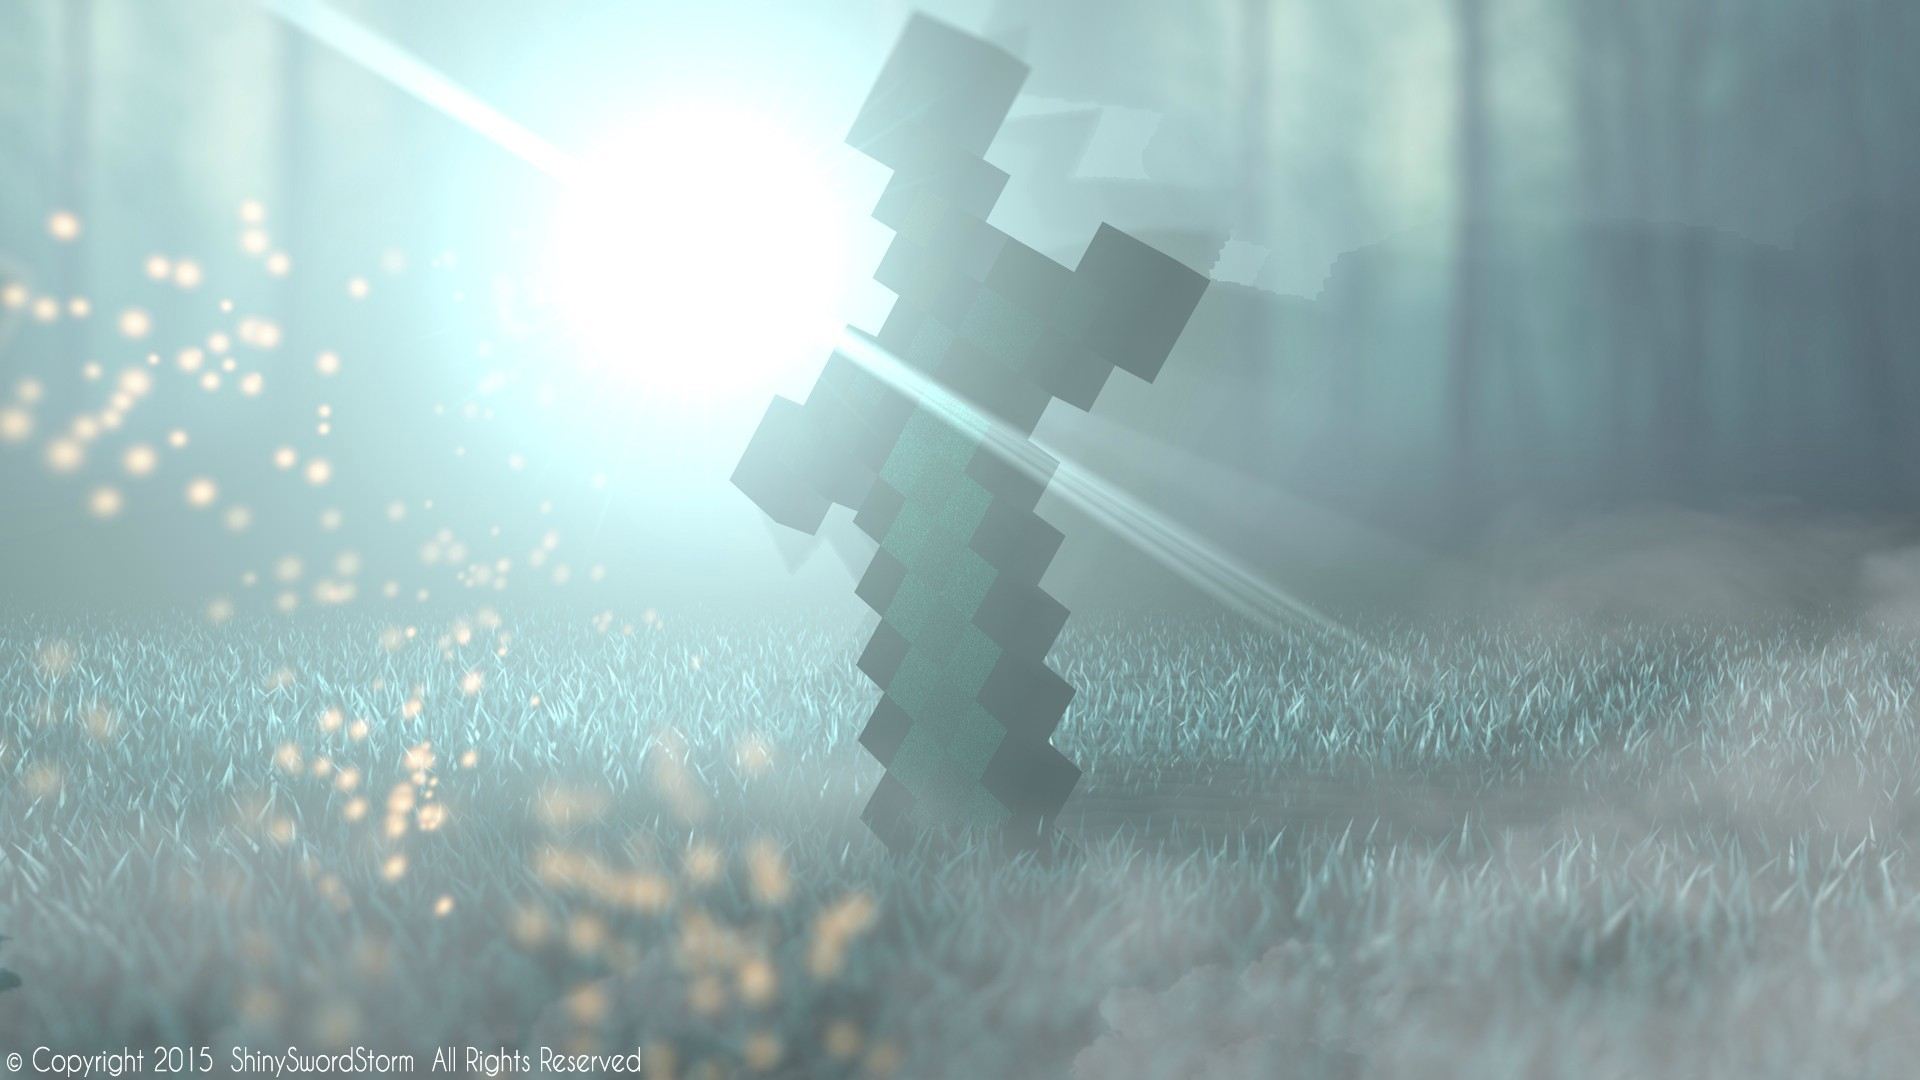 The Diamond Sword From Minecraft - Swish And Slash